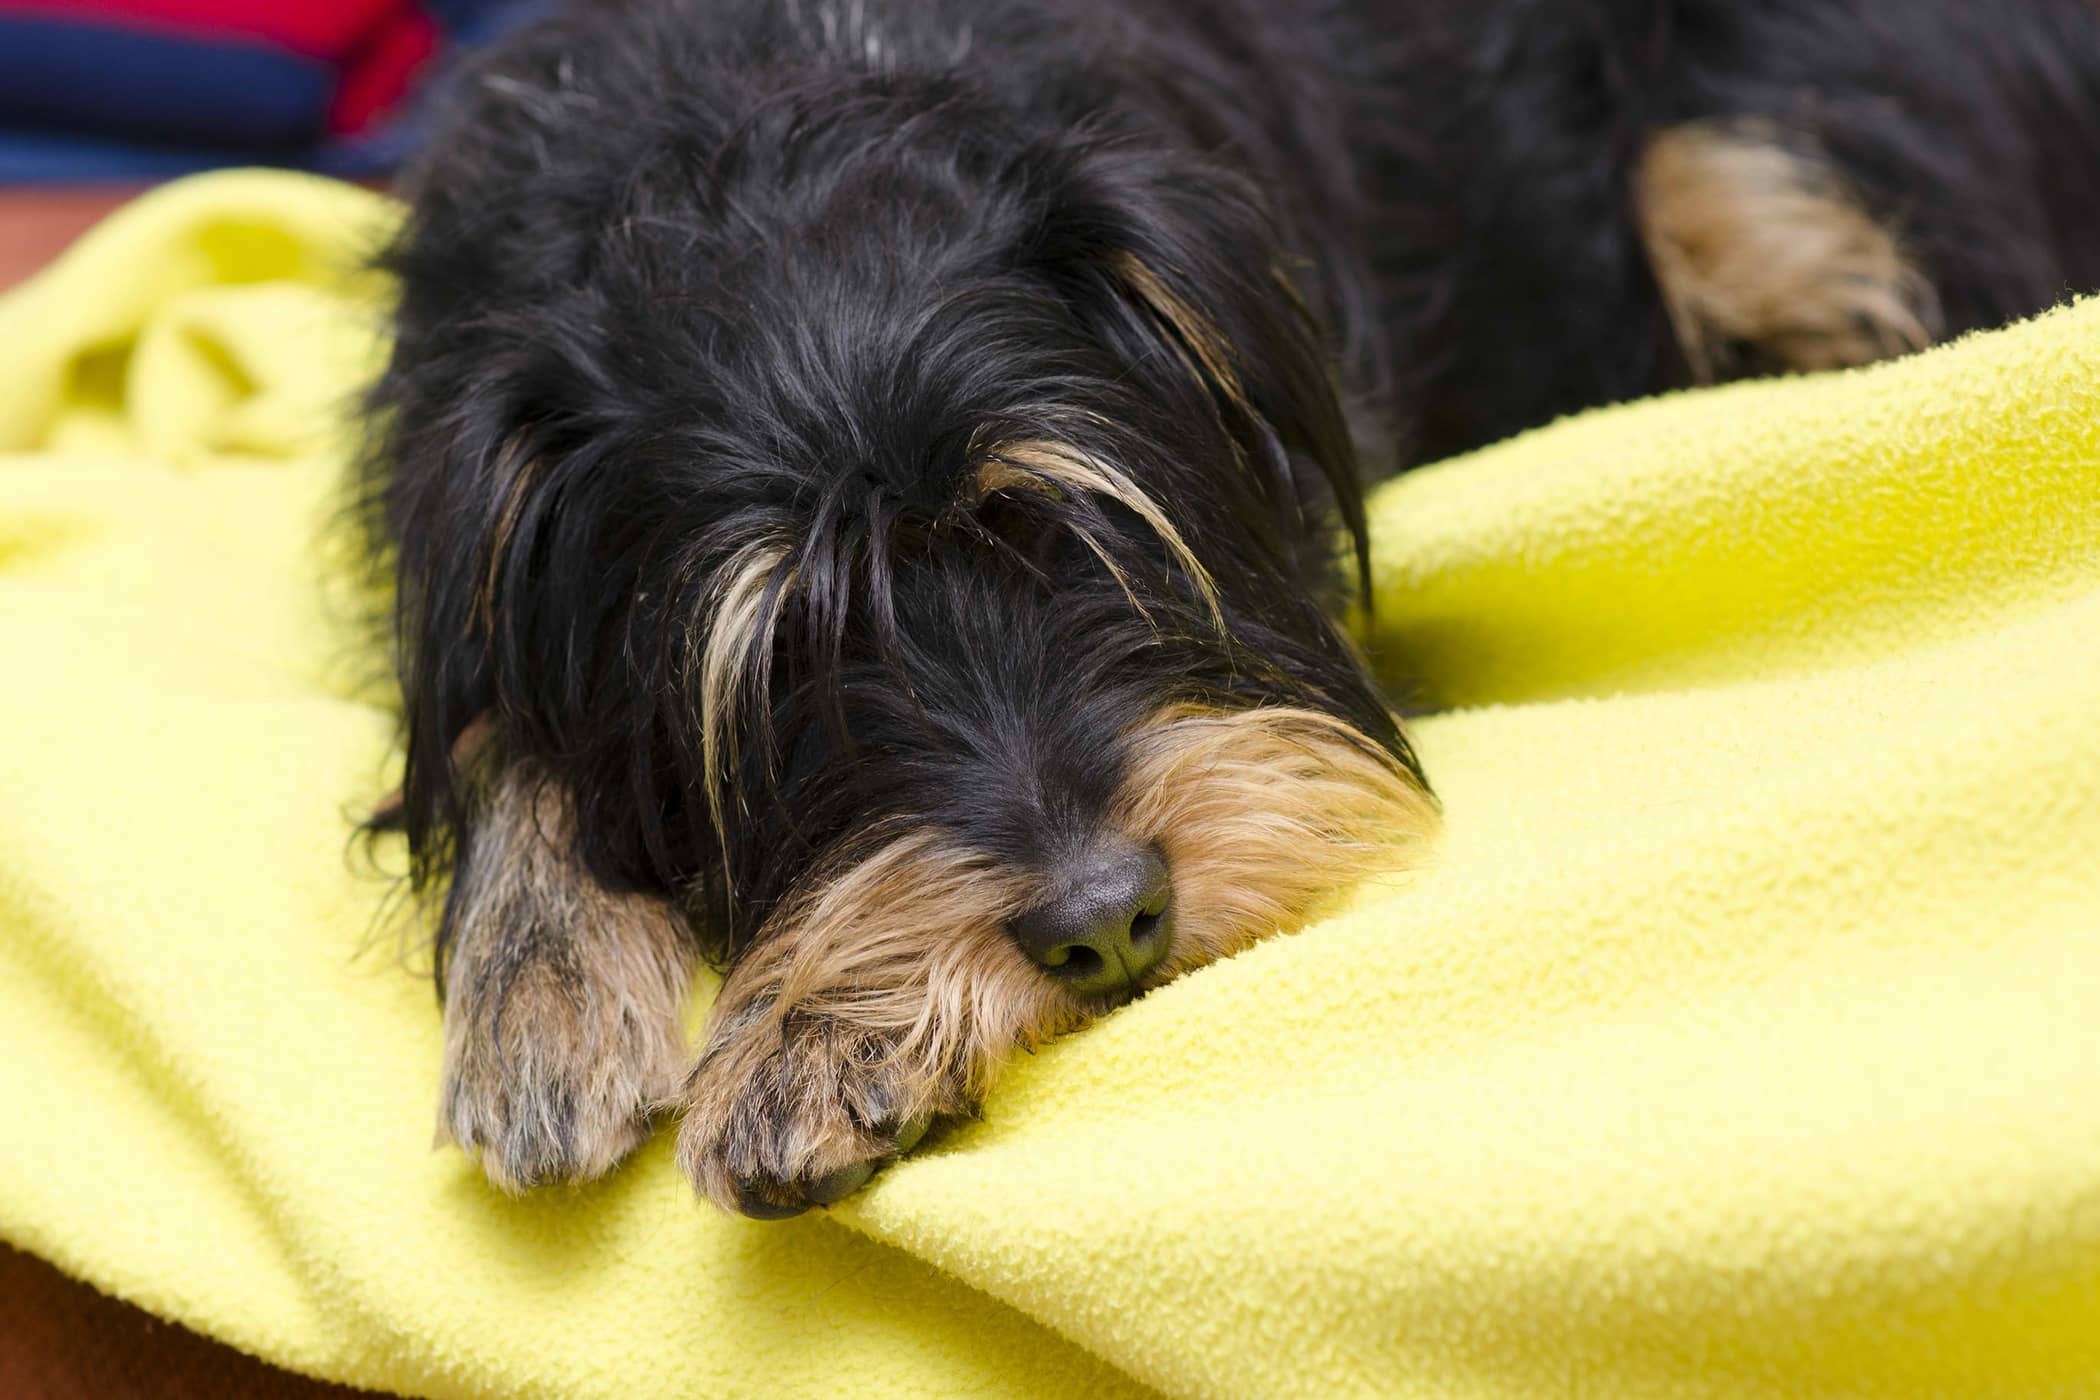 Bladder Lavage in Dogs